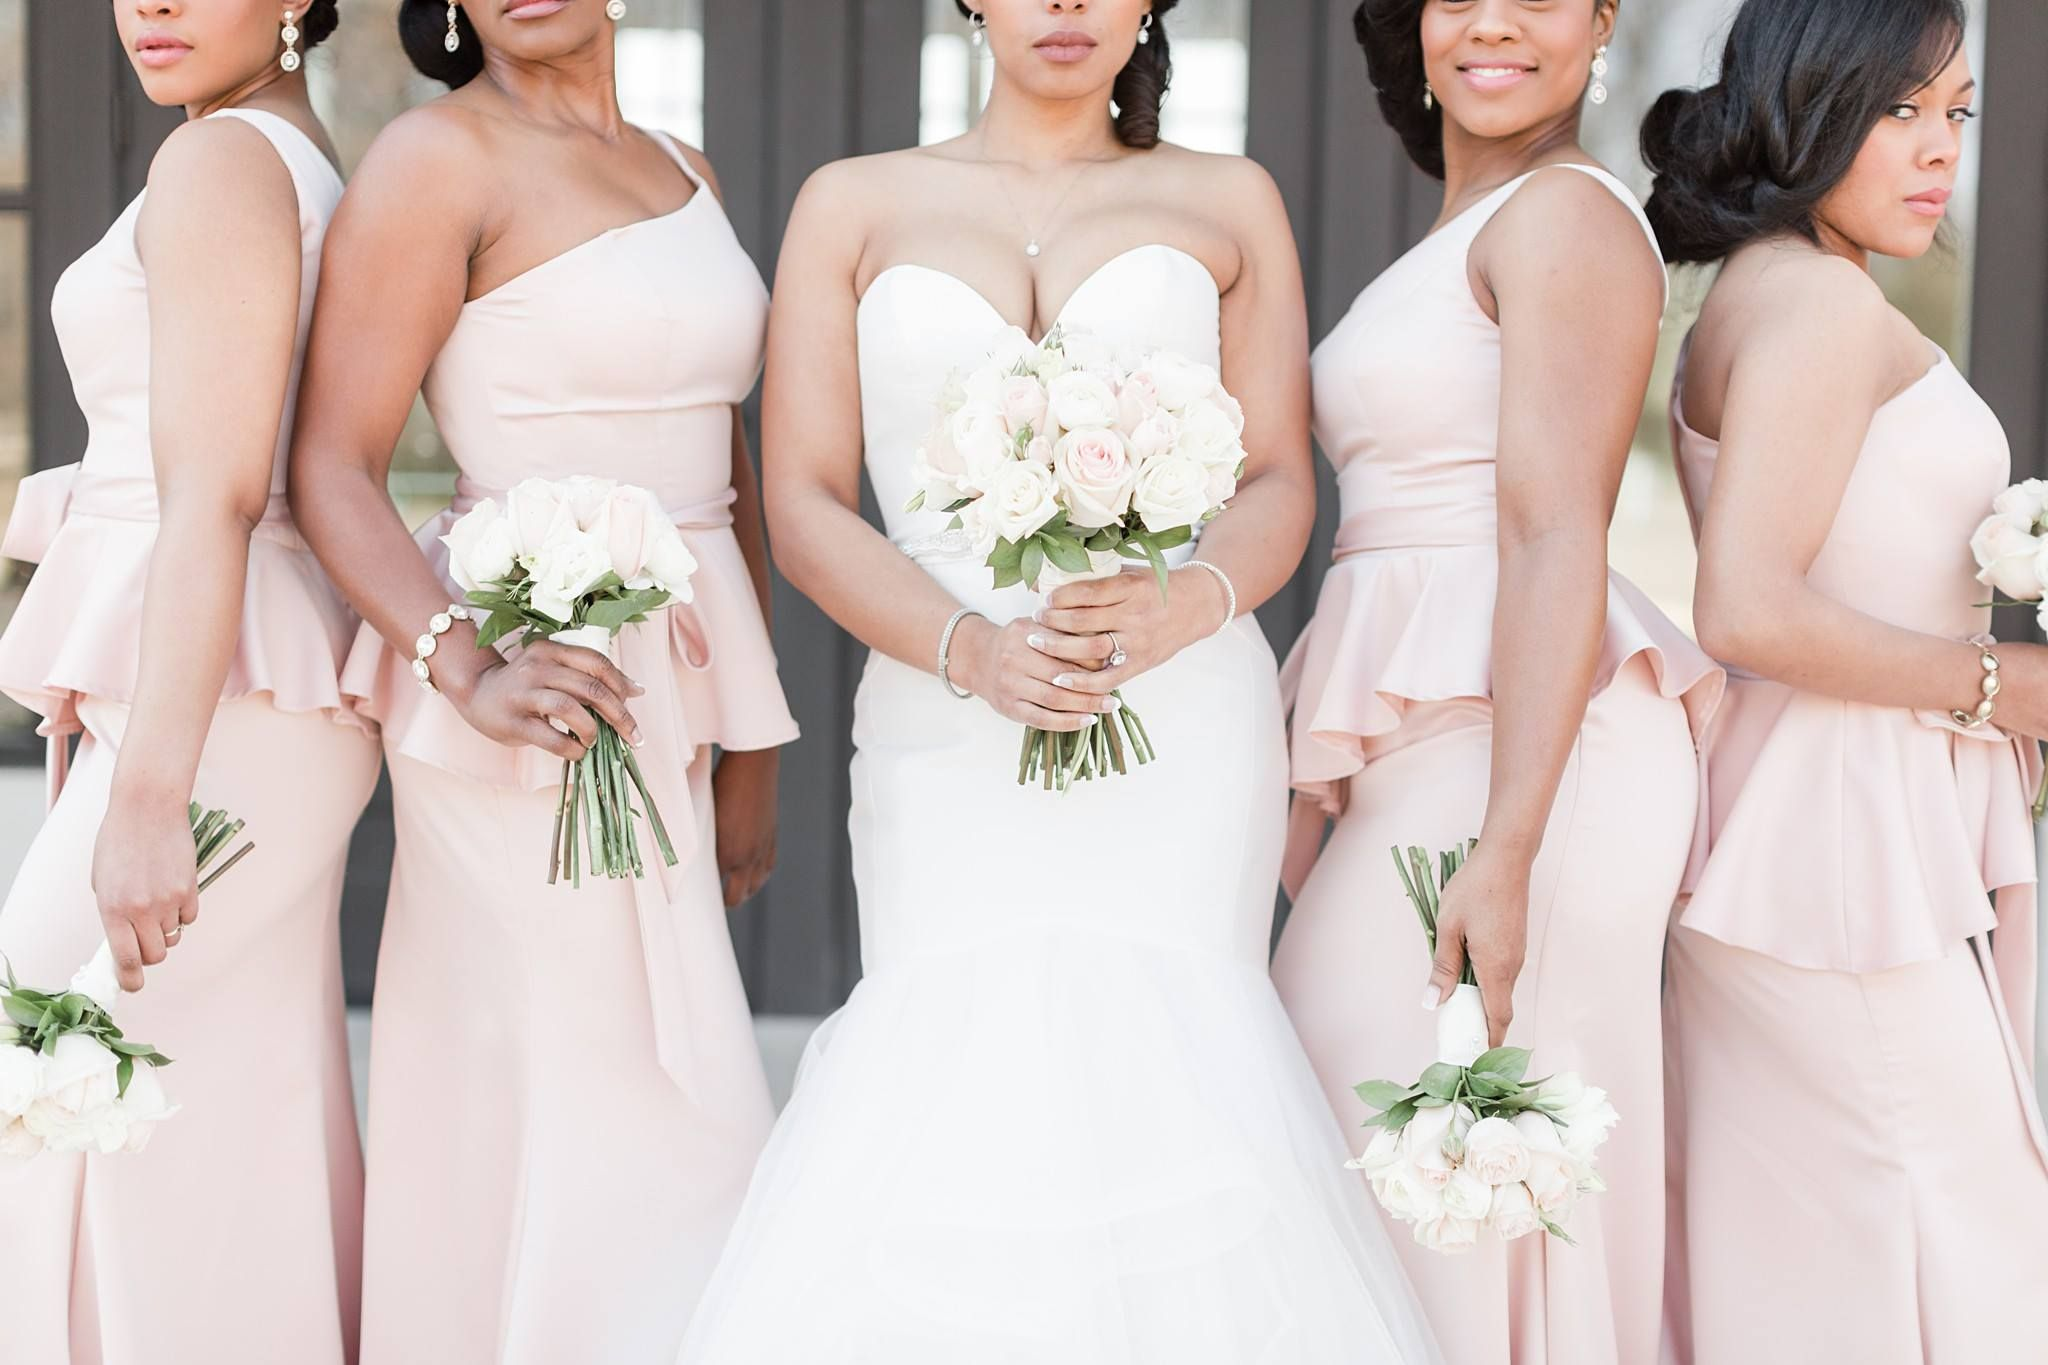 Just....slay. These incredible women look flawless and those bouquets bring us nothing but smiles! Photo credit: Amy Hutchinson photography